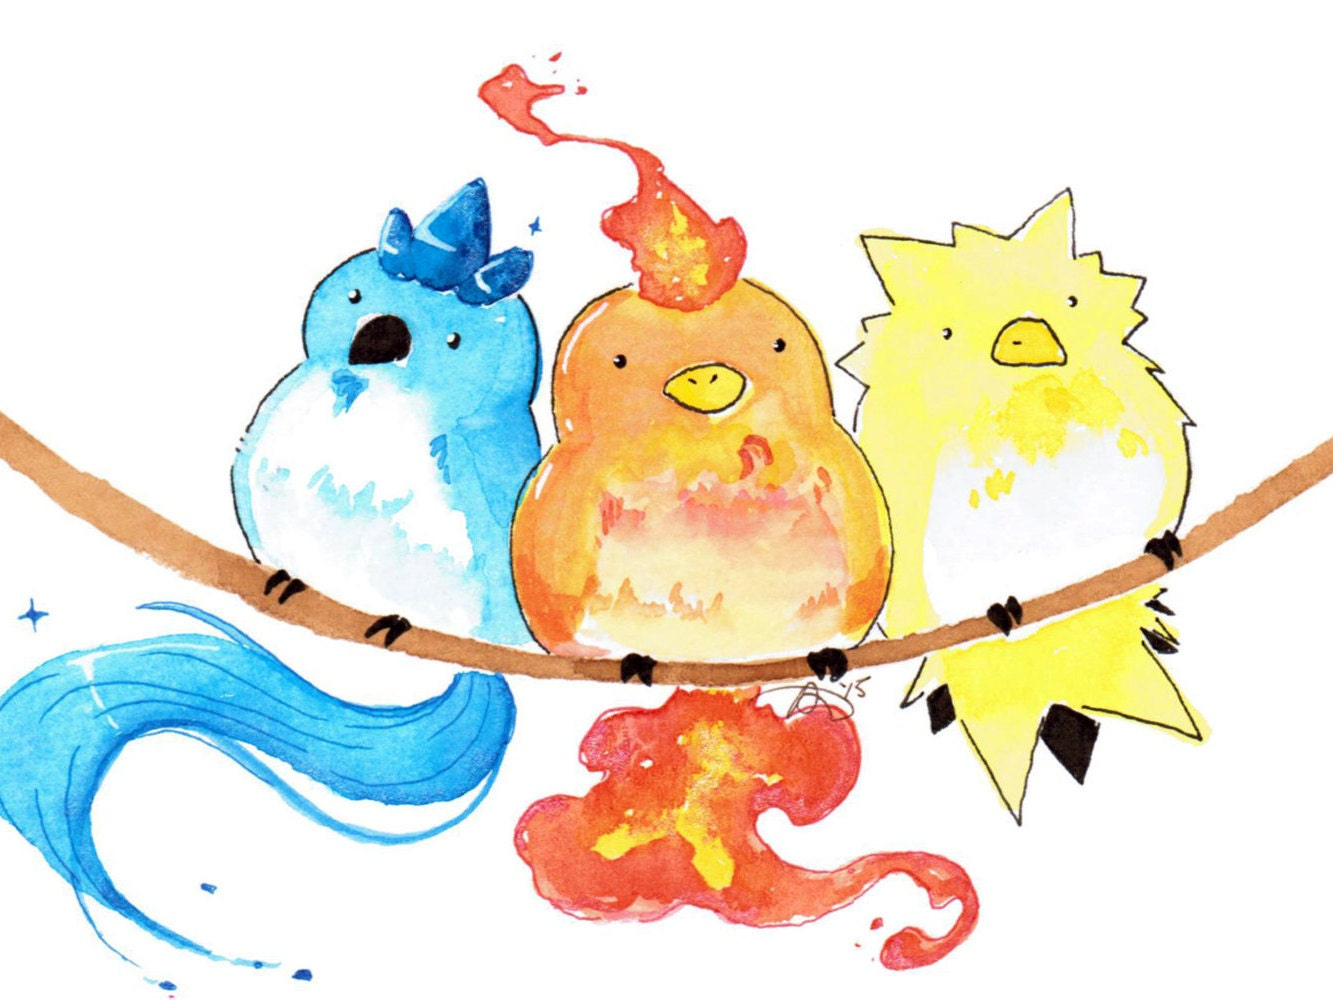 Pokemon cute watercolor art images pokemon images for Cute watercolor paintings